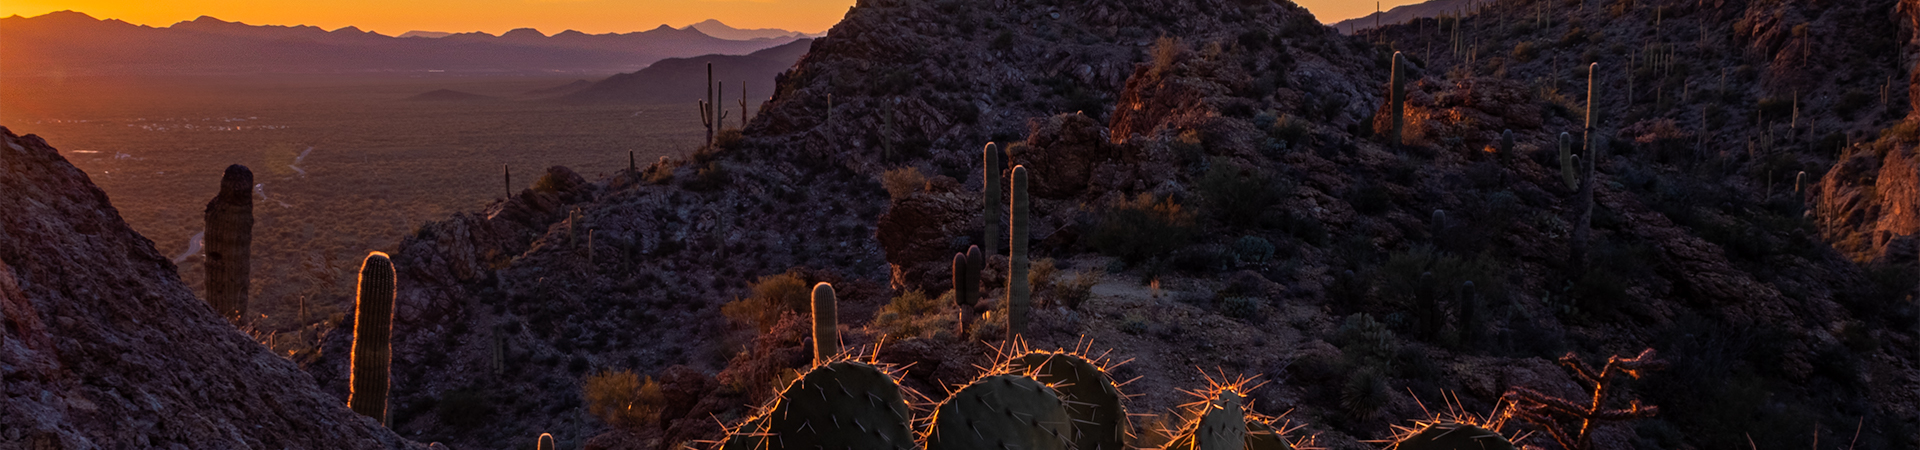 Sunset at Gates Pass west of Tucson, Arizona. The Sonoran Desert at dusk, with prickly pear, cholla and saguaro cacti.